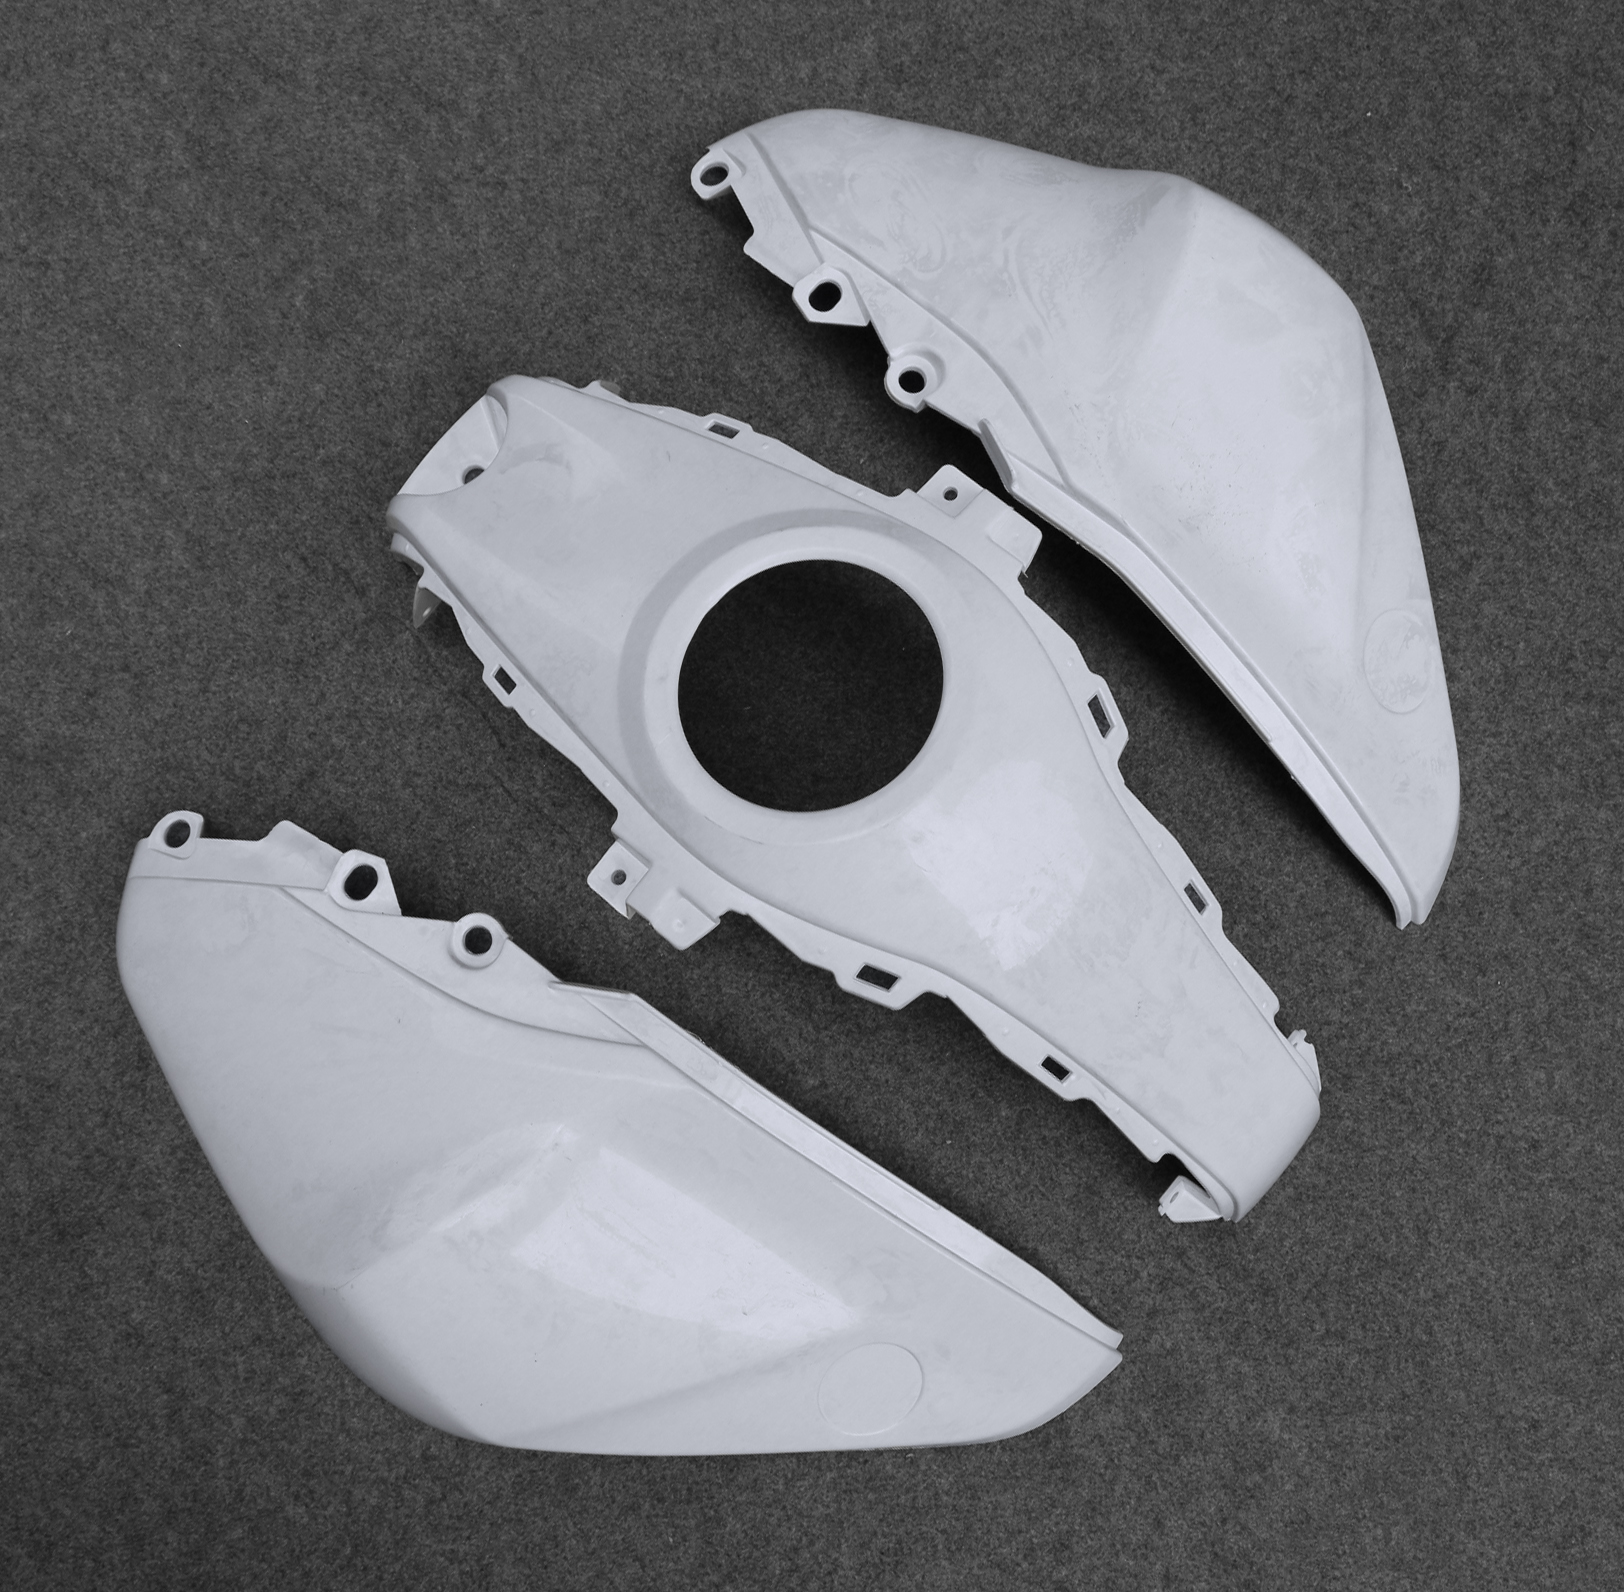 Fuel Gas Petrol Tank Fairing Shell Cowl Shelter For Yamaha YZF-R3 R25 2013-2017 14 15 16